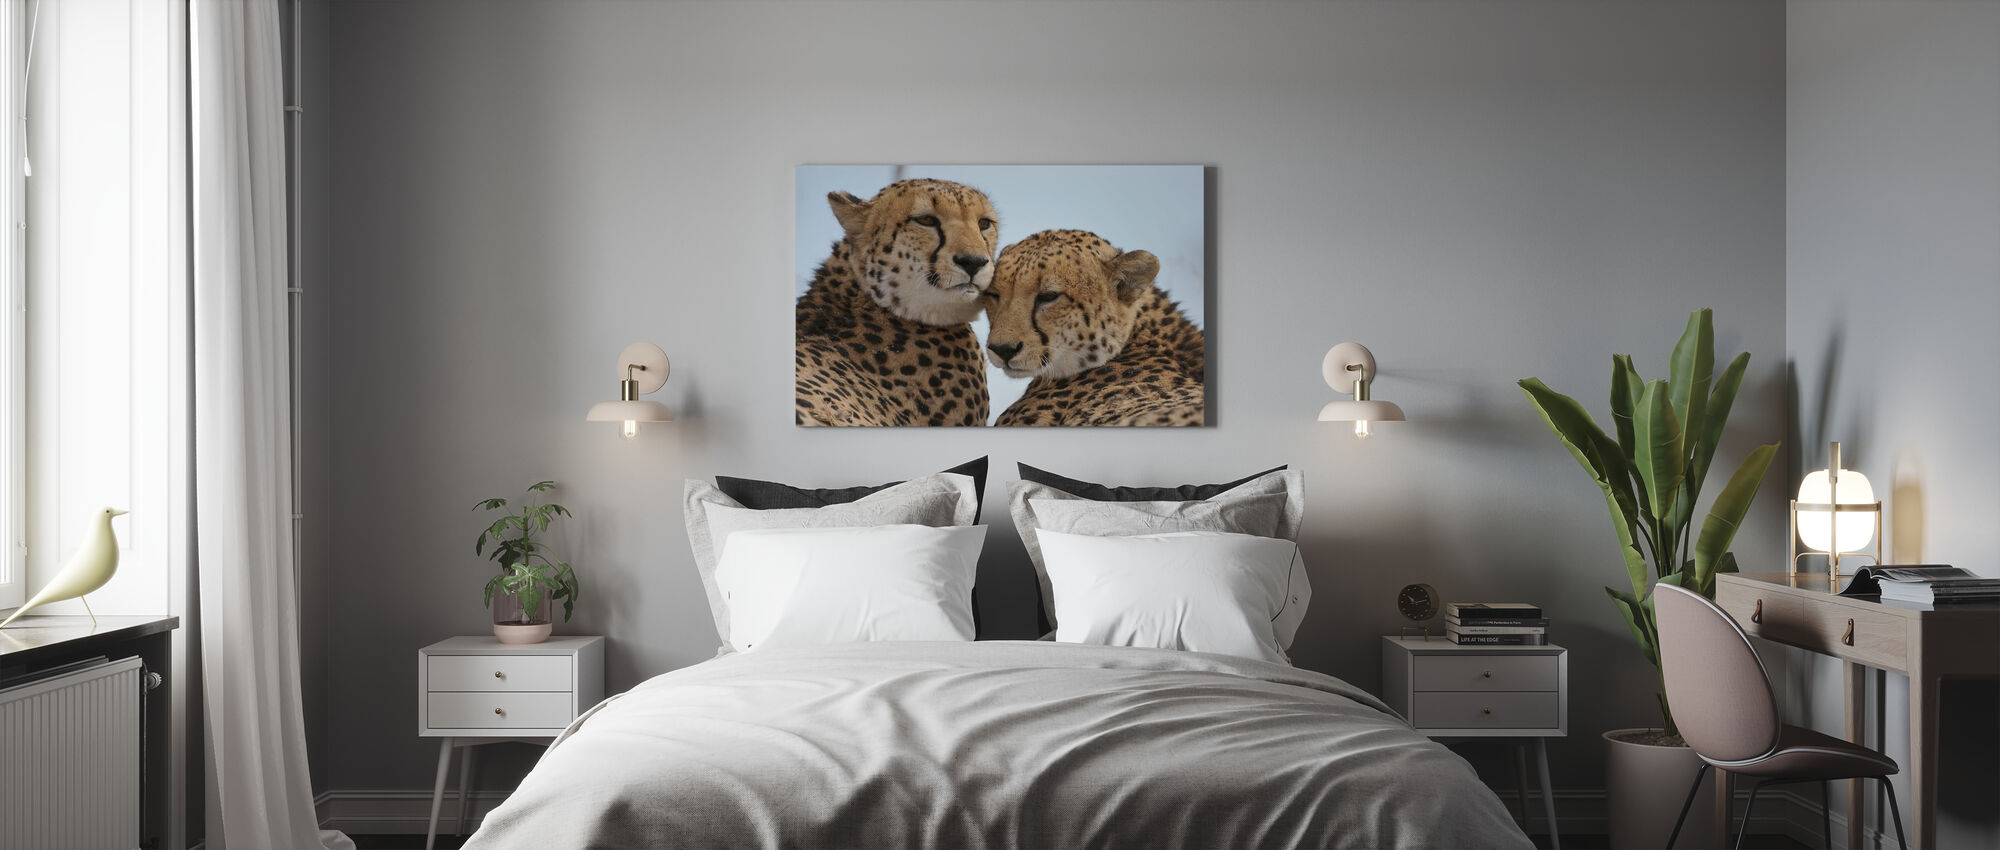 Cheetah Leaning Close - Canvas print - Bedroom